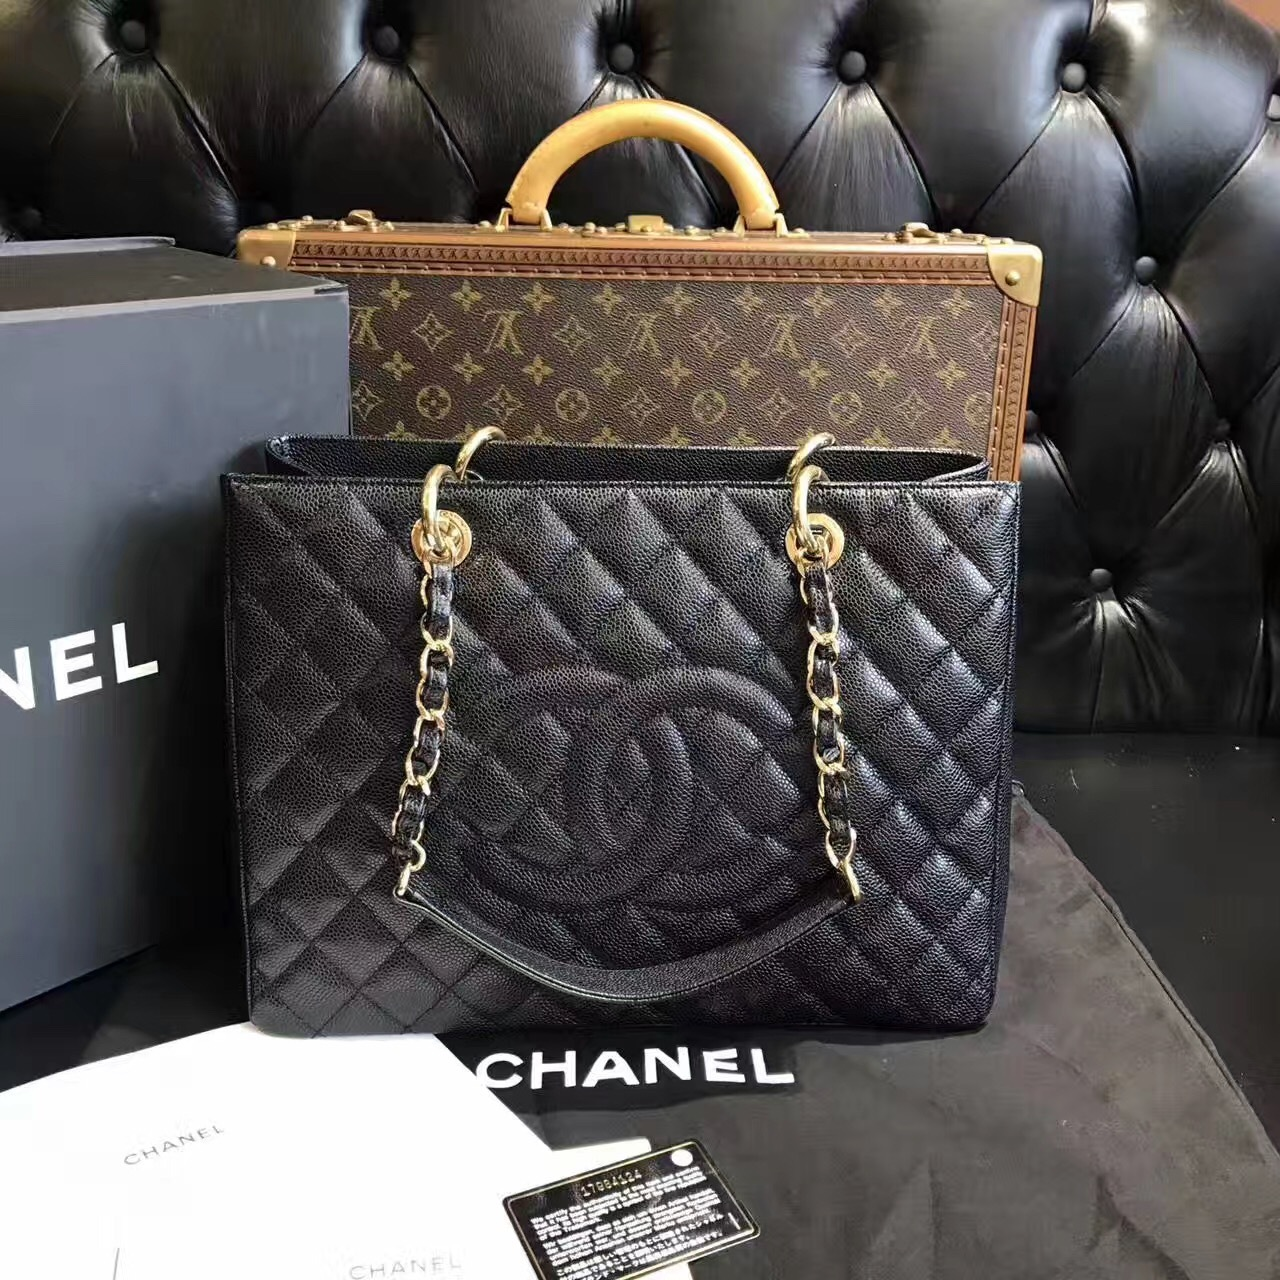 54f3c72fba74 100% AUTHENTIC CHANEL CAVIAR GST GRAND SHOPPING TOTE BAG BLACK GHW ...